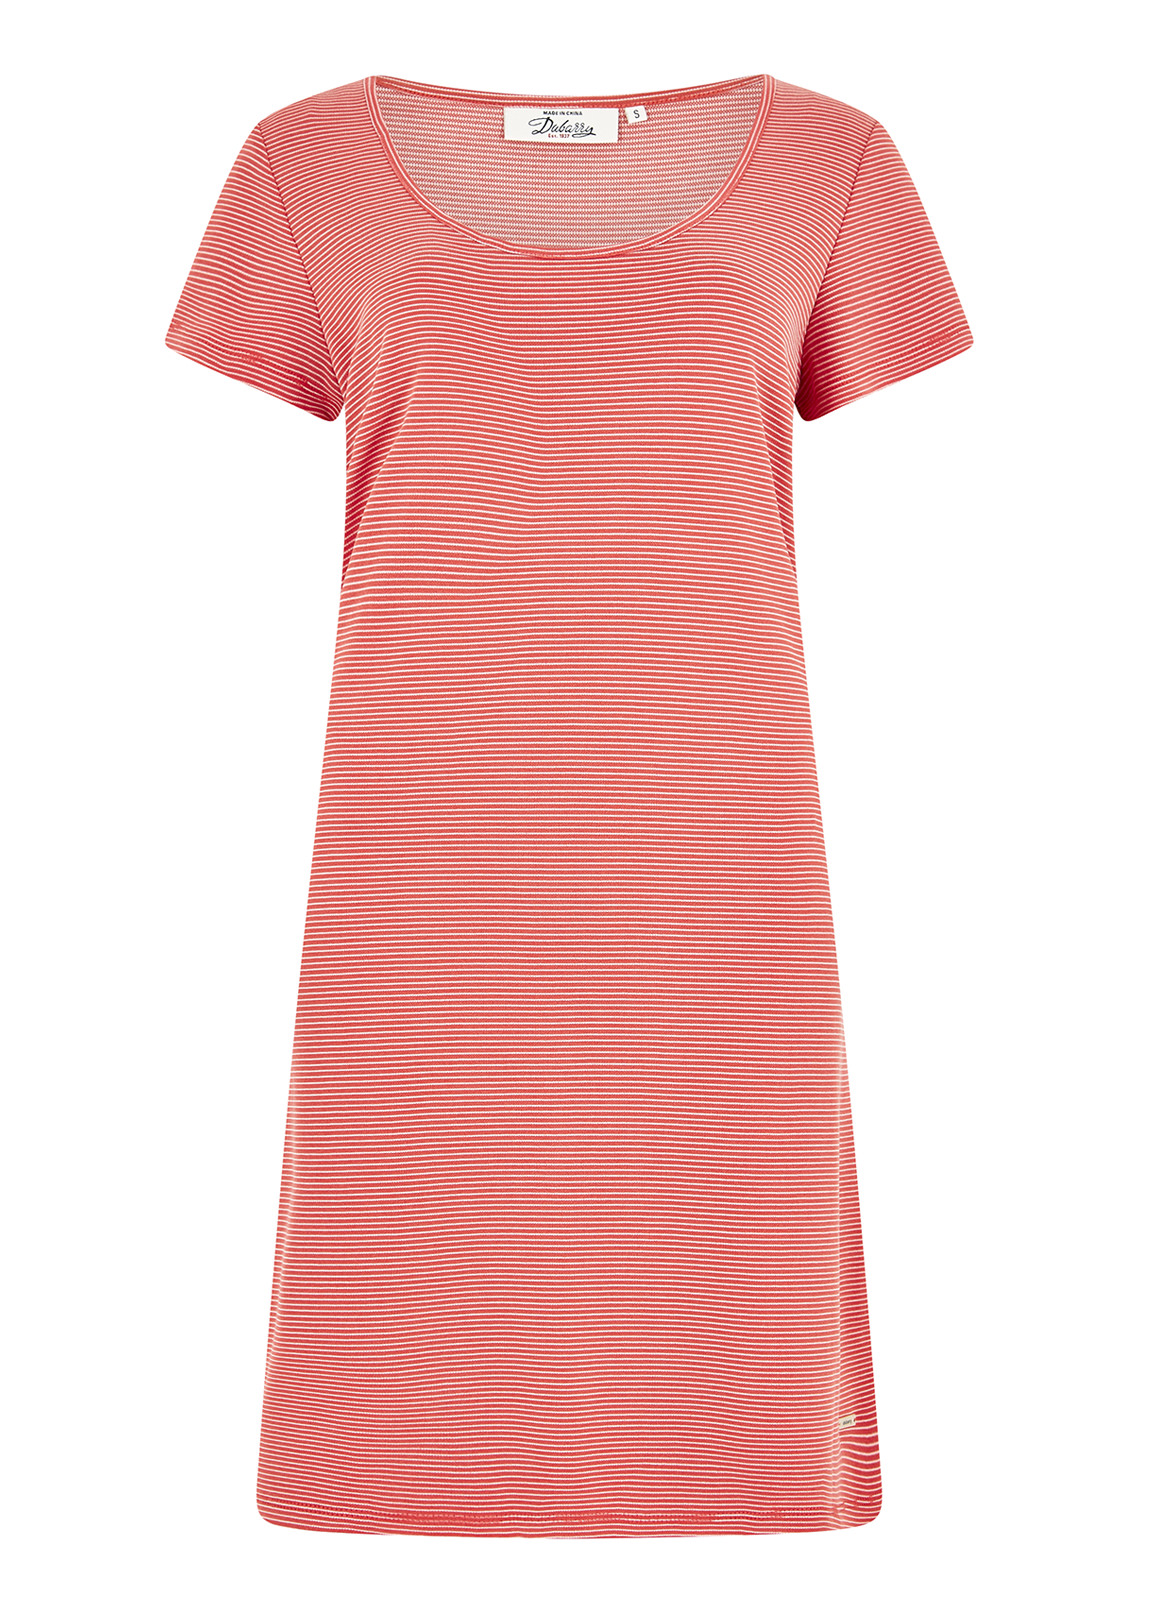 Dubarry_Suncroft Dress - Poppy_Image_2